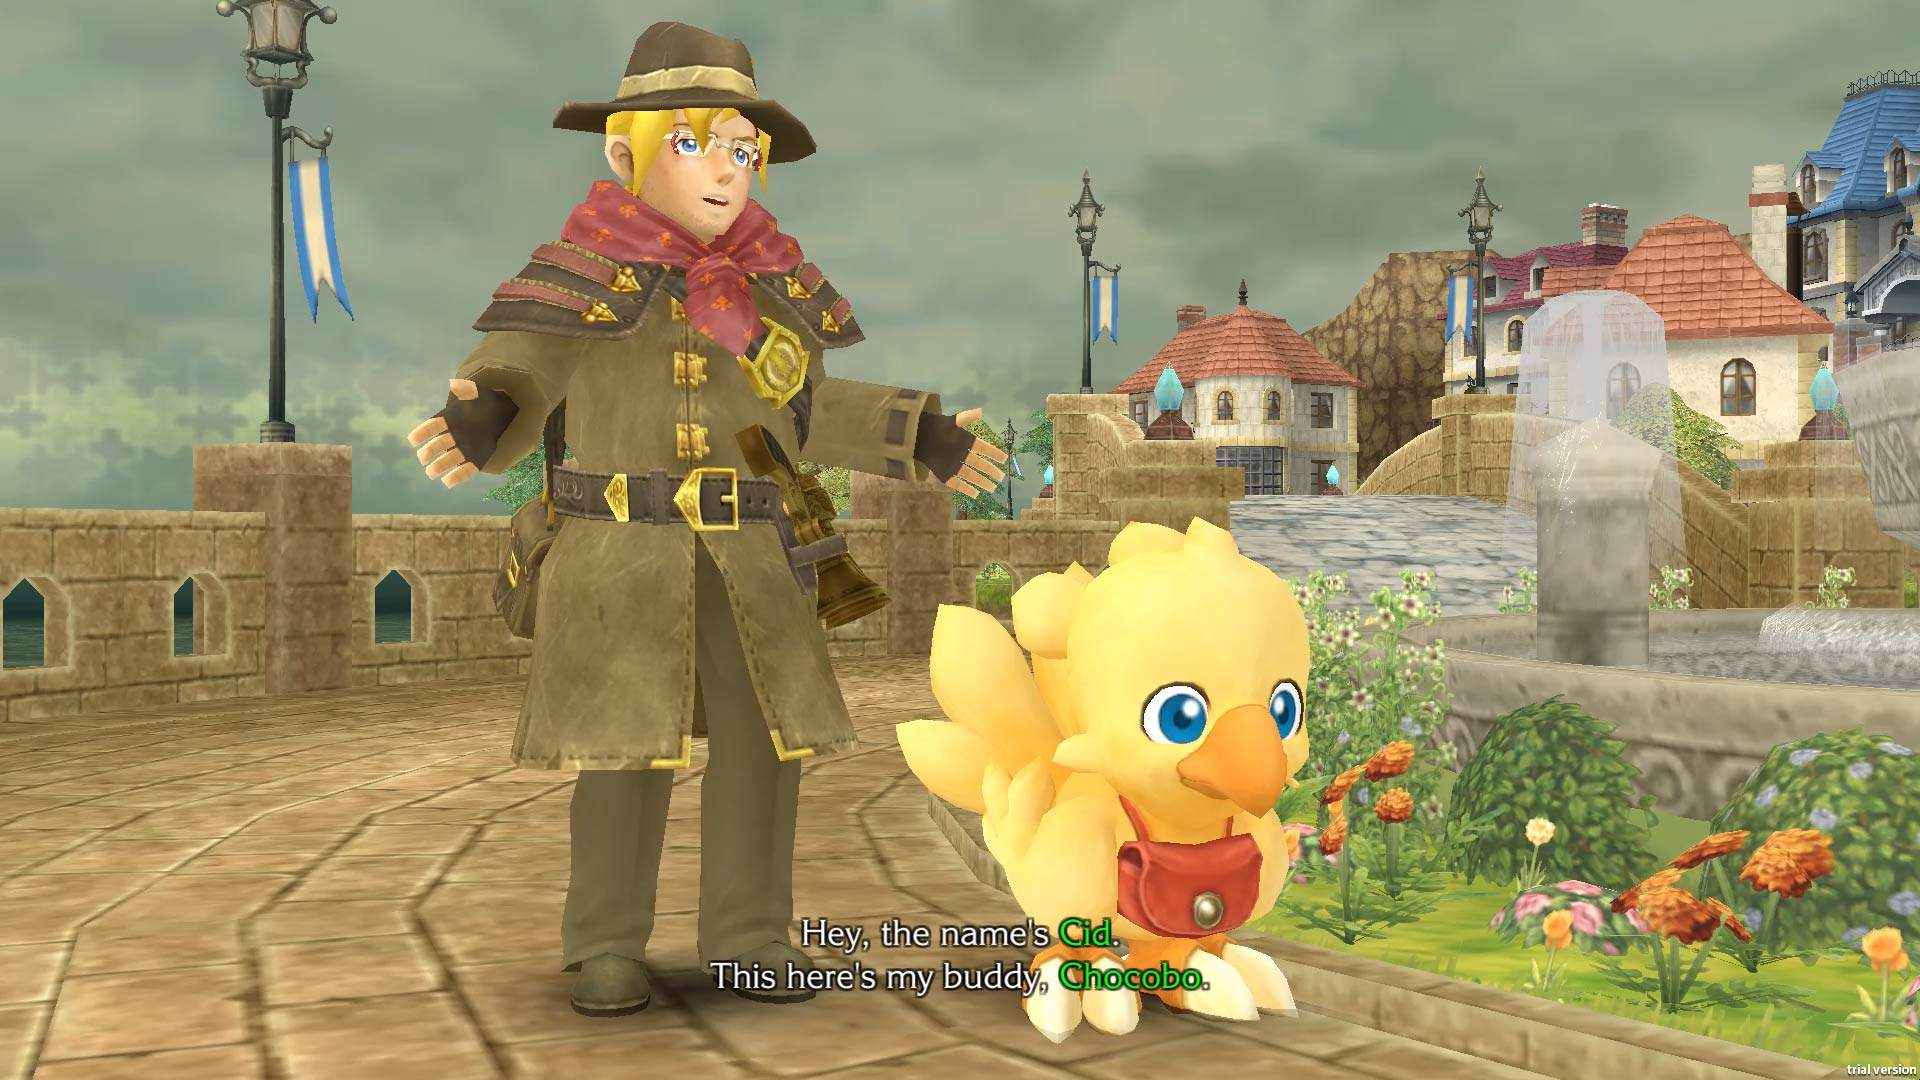 SQUARE ENIX - Games - Chocobo's Mystery Dungeon EVERY BUDDY!